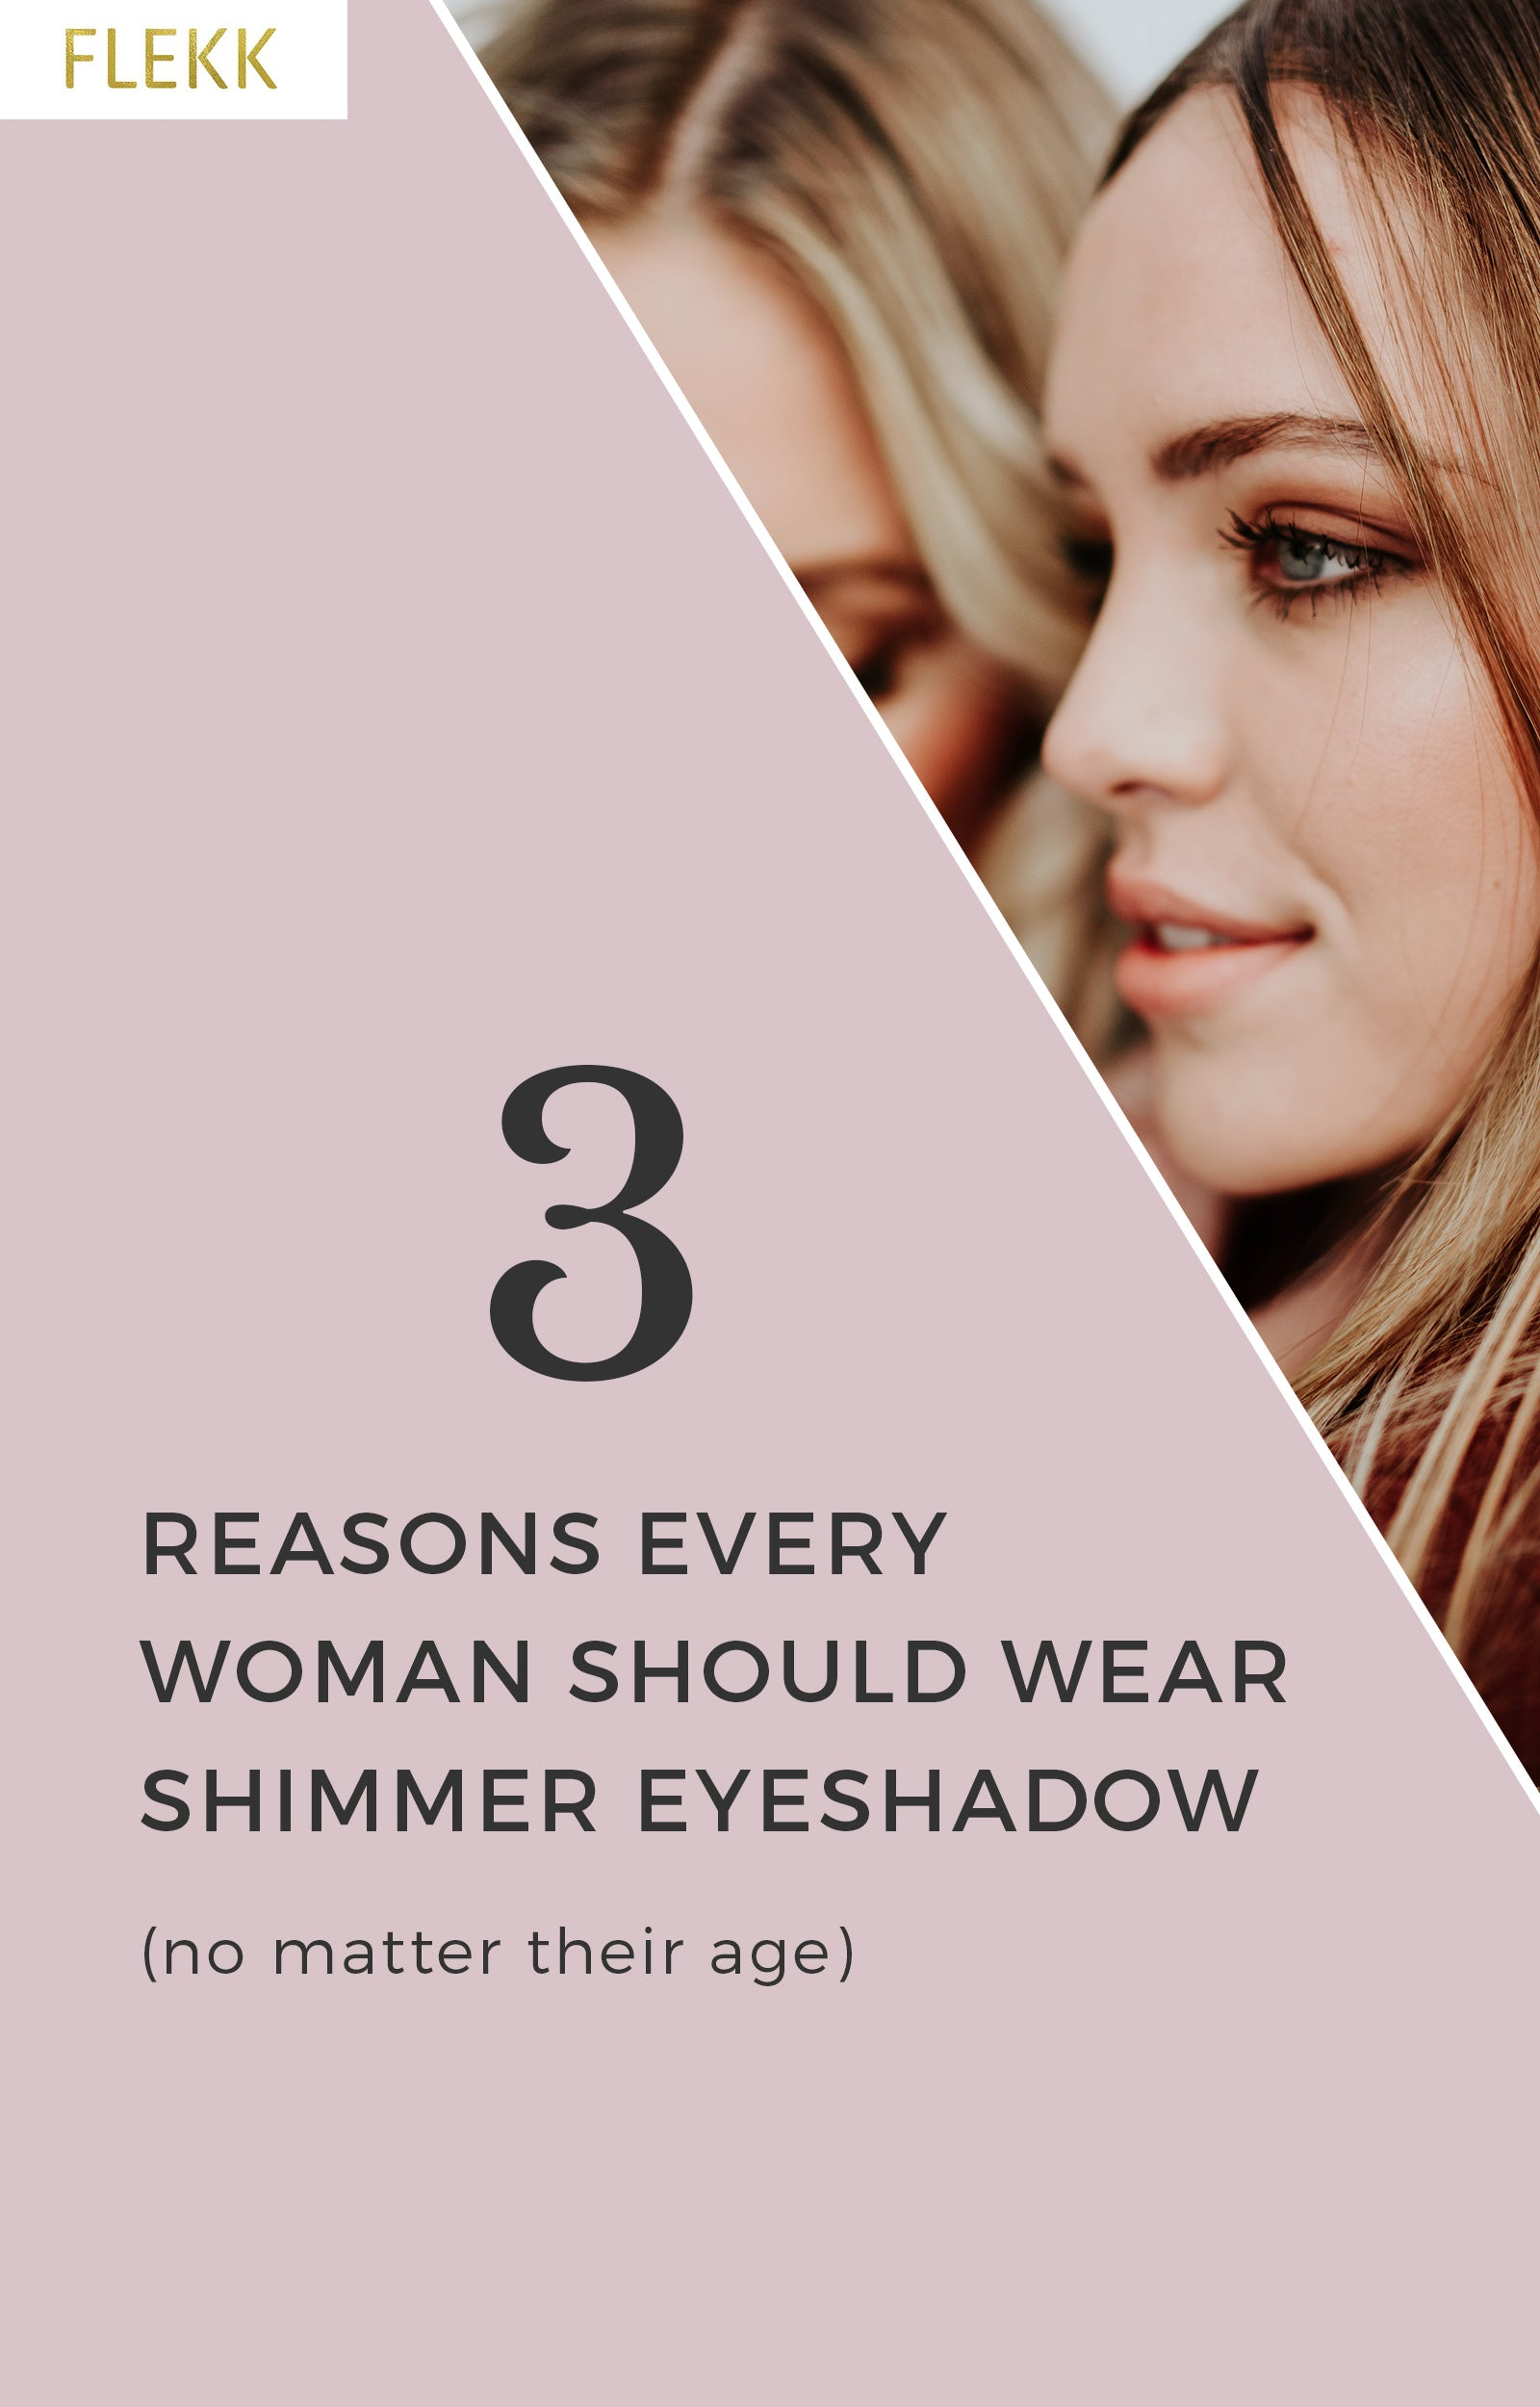 3 Reasons why every woman should wear shimmer eyeshadow–no matter their age! How to wear shimmer eye shadow for women of all ages. #eyeshadowtips #shimmer #makeuptips #eyemakeup #howtowearshimmer